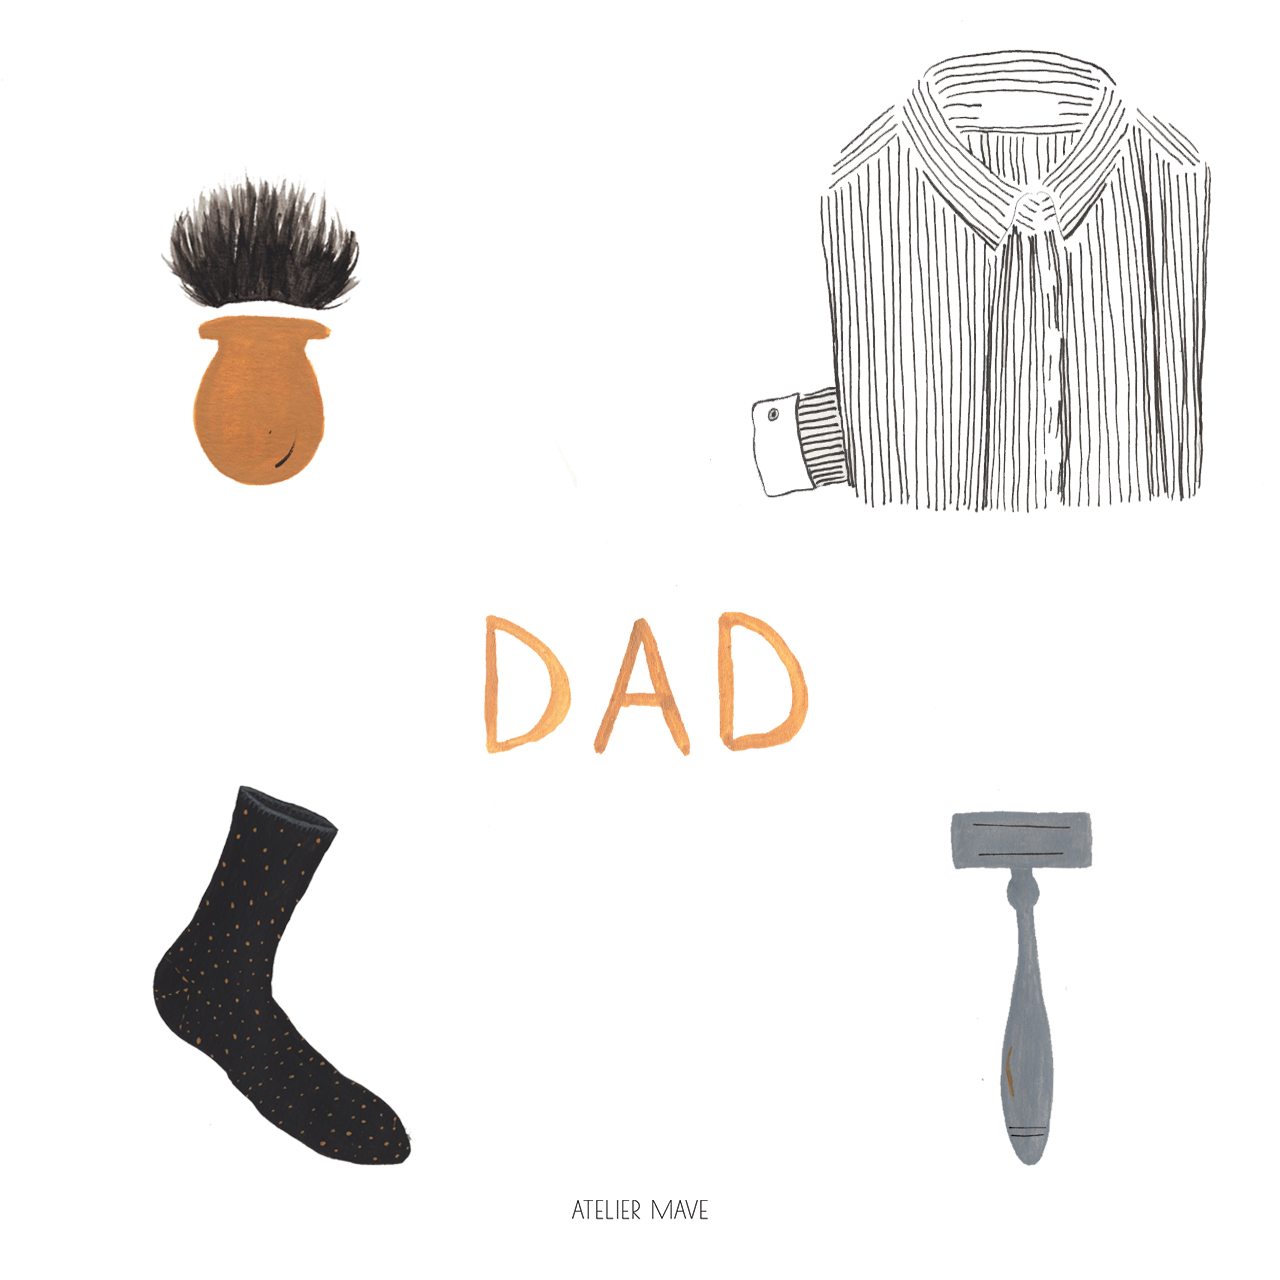 Atelier Mave - Fathers day illustration